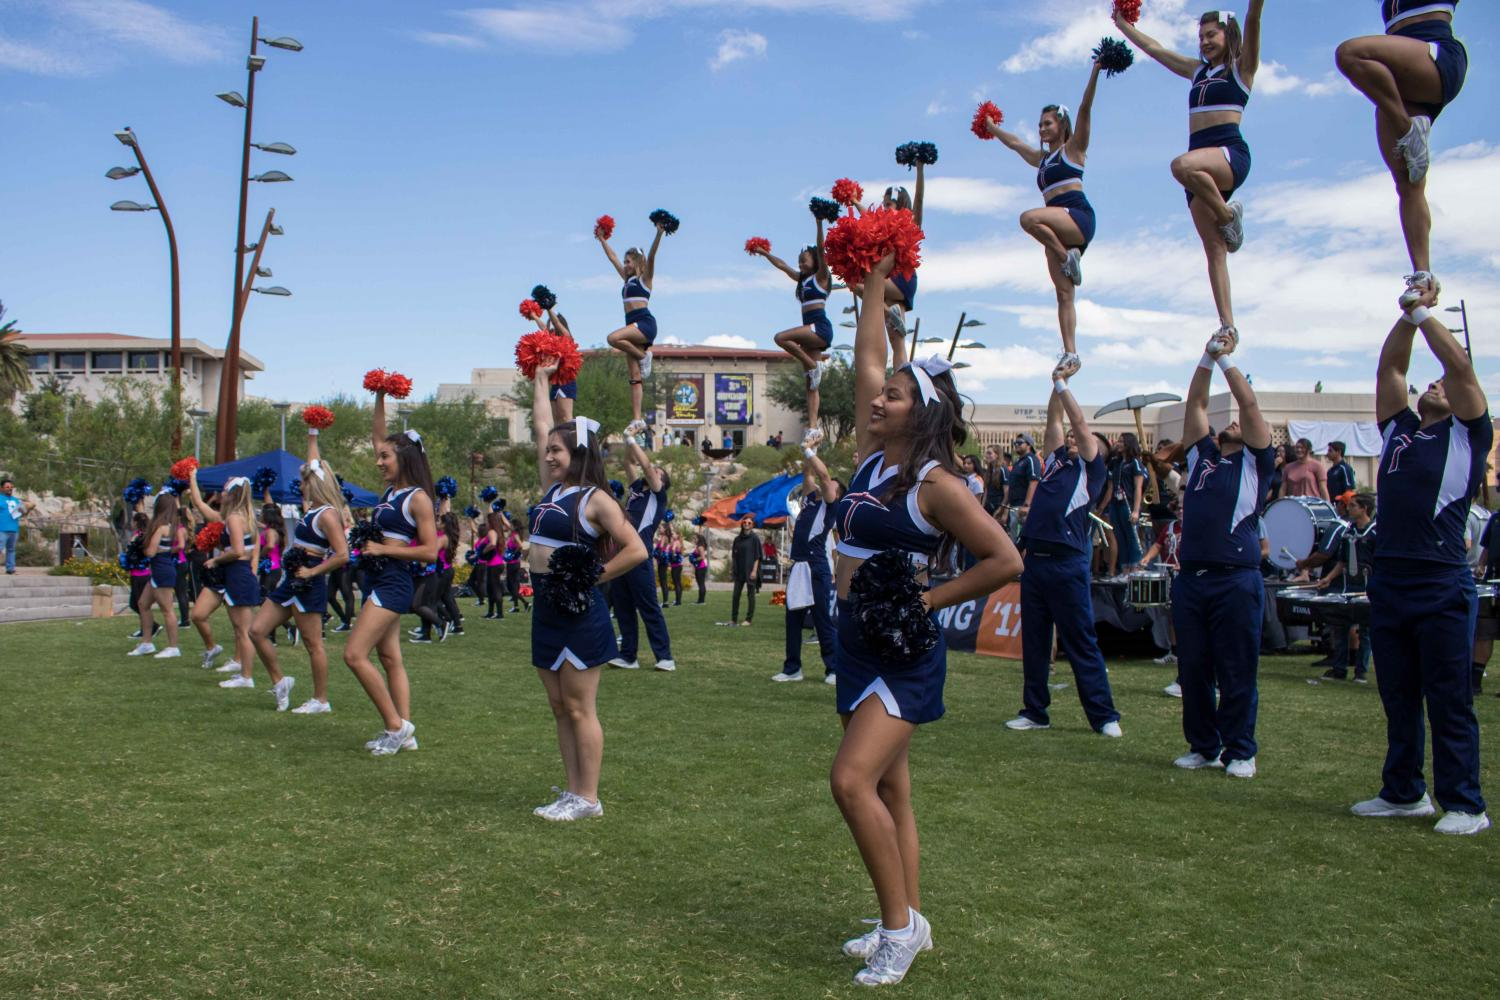 UTEP cheerleaders and Gold Digger preformed during the Homecoming Pep Rally at centennial plaza.